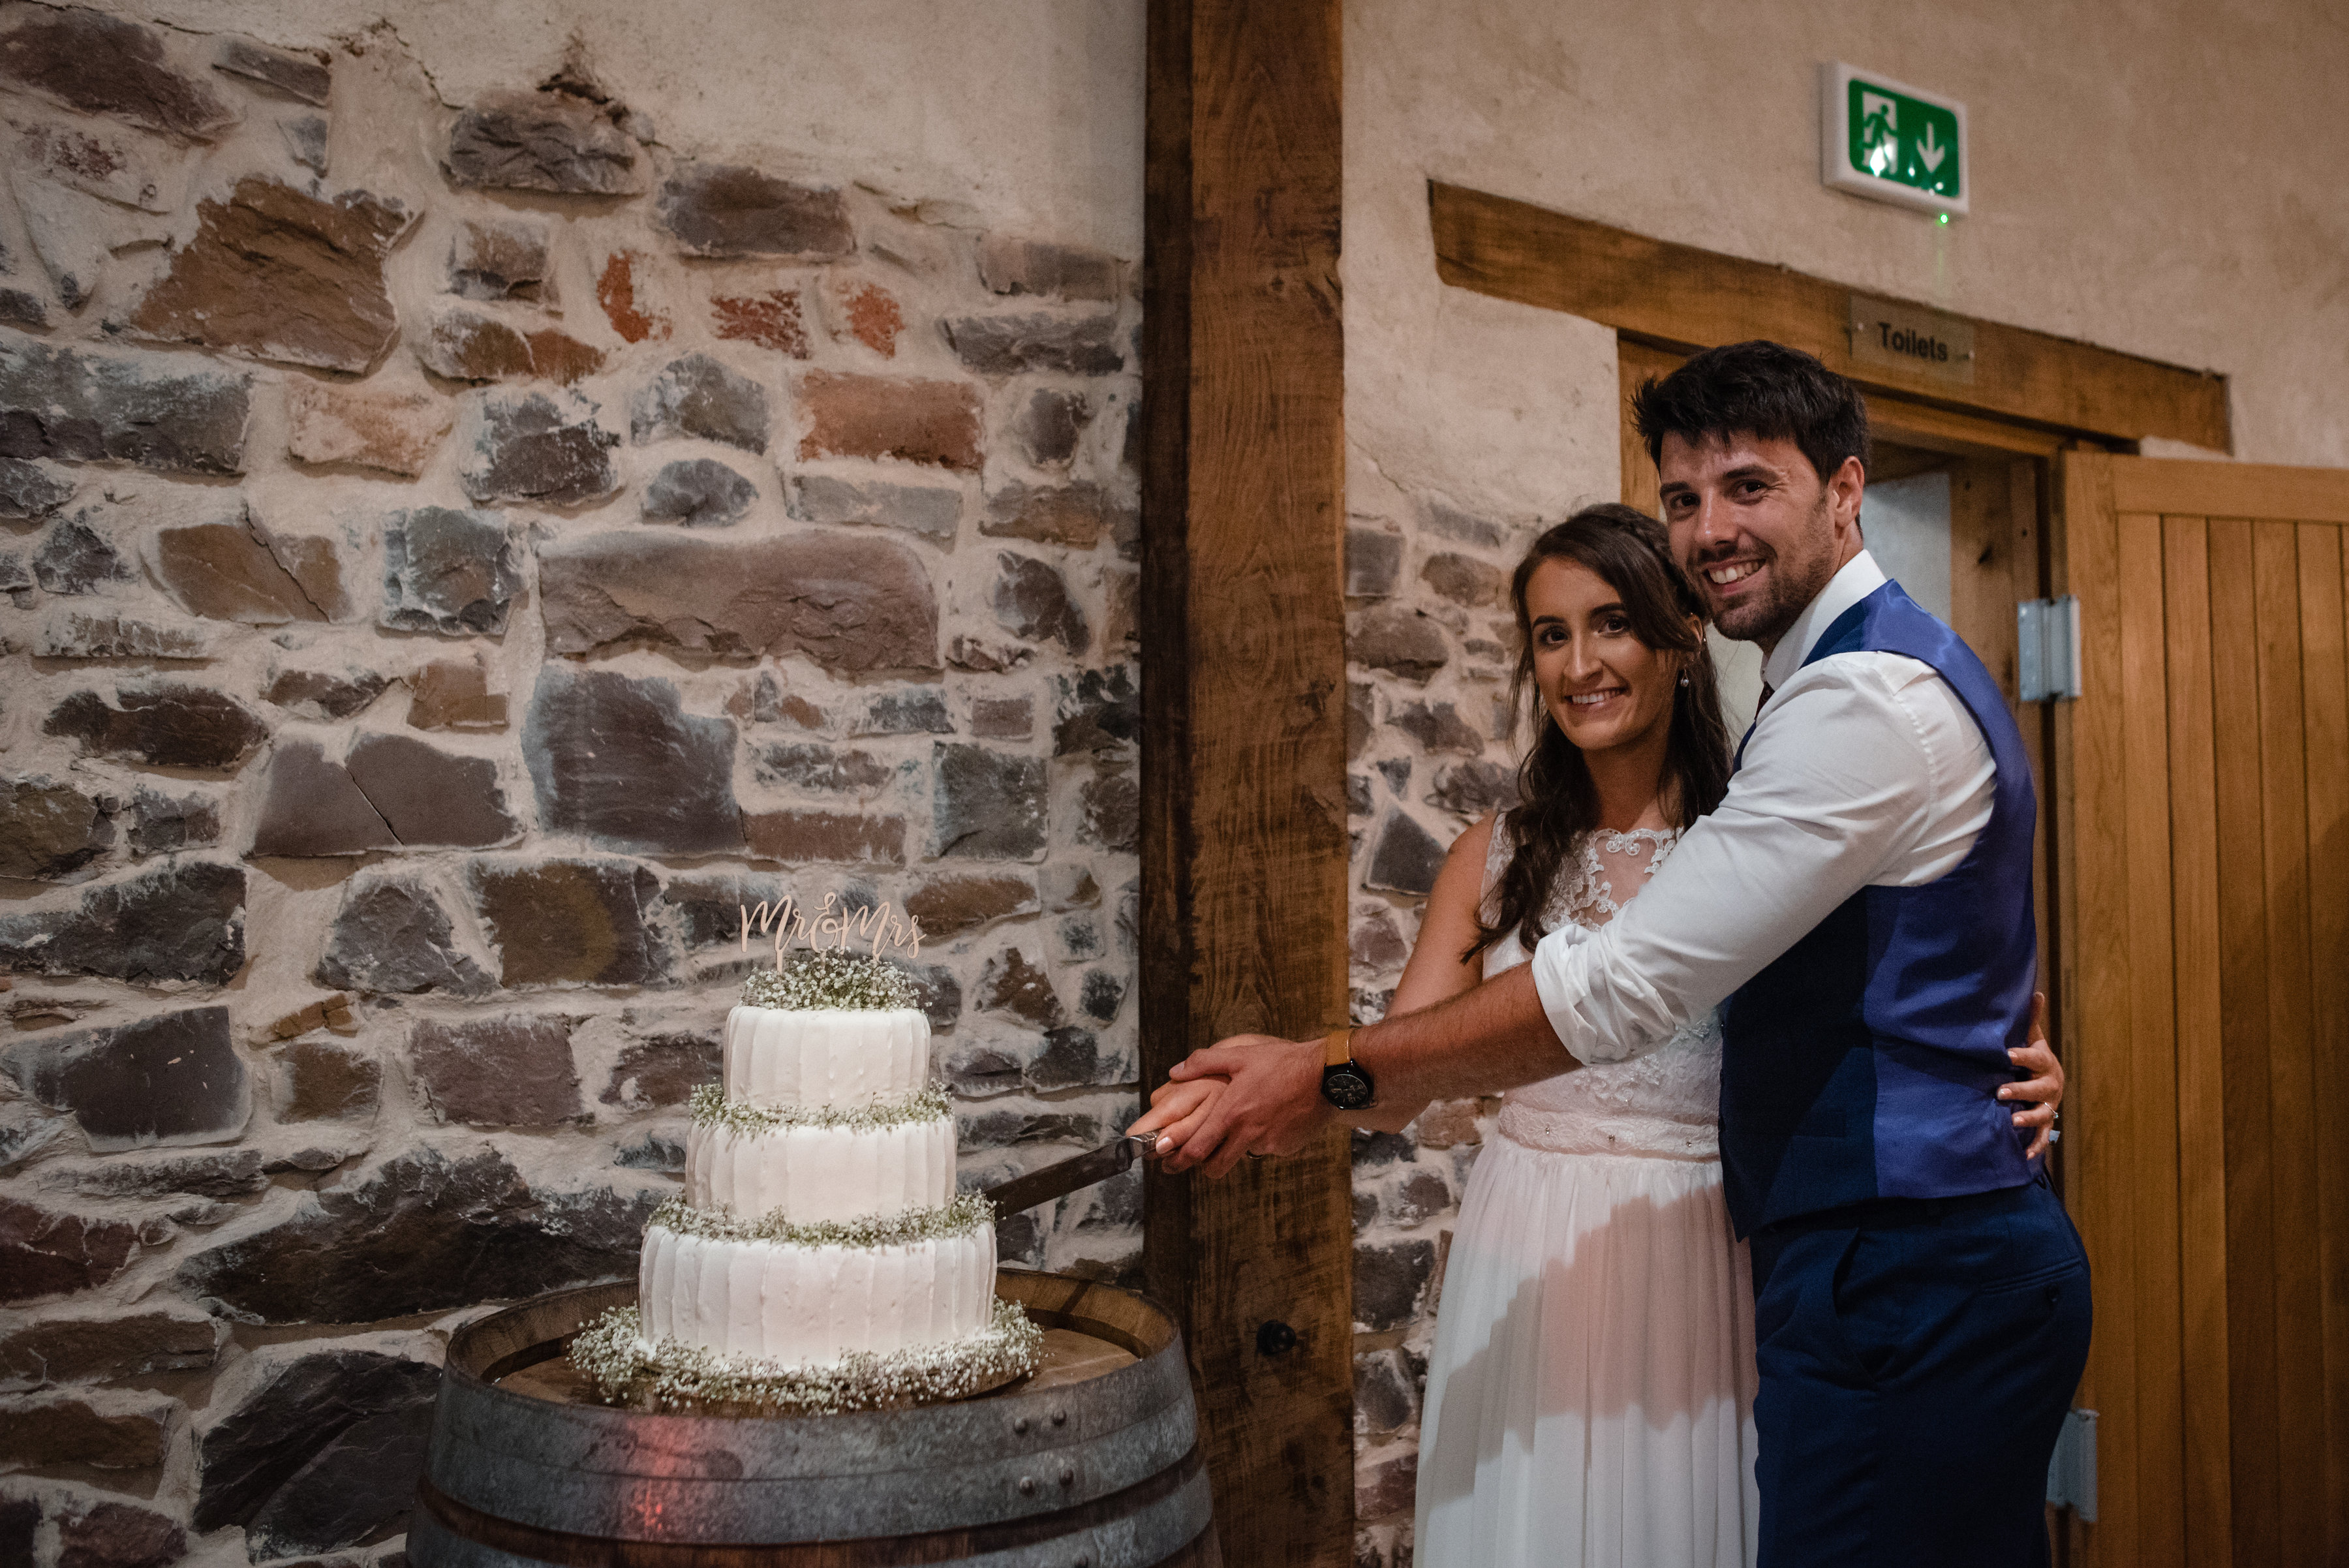 Bride and groom cut their wedding cake at Upton Barn & Walled Garden